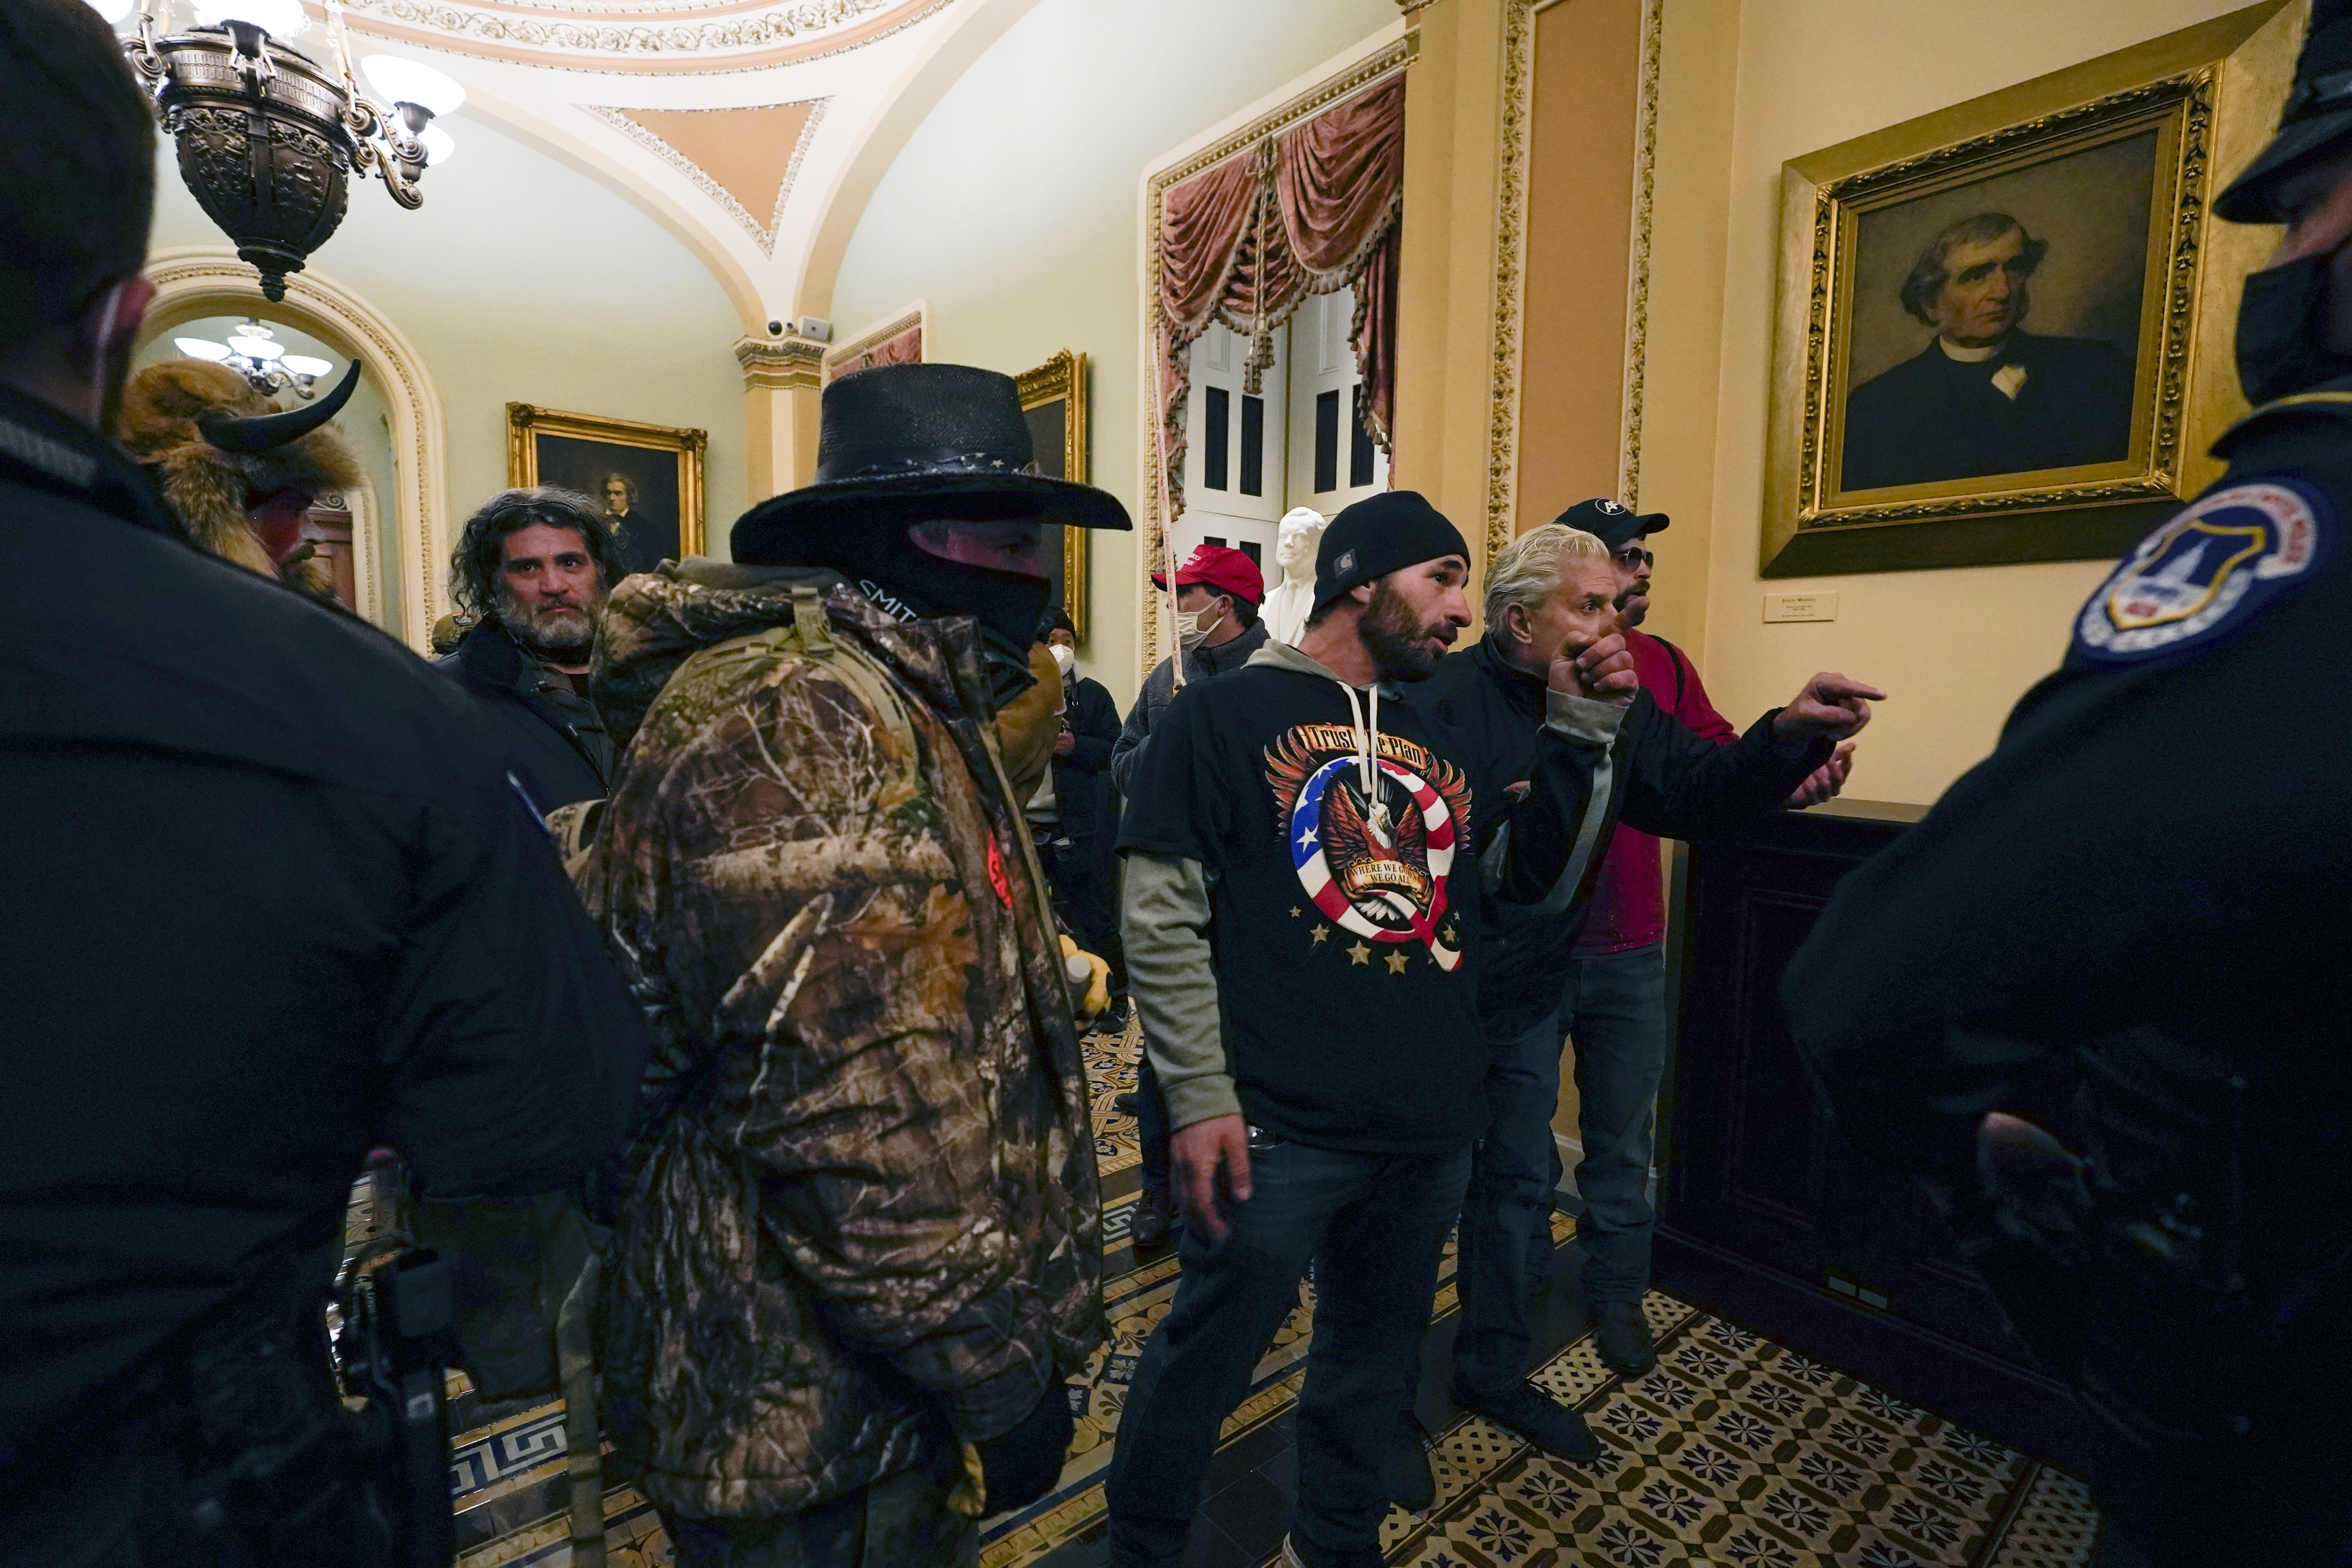 Protesters walk as U.S. Capitol Police officers watch in a hallway near the Senate chamber at the Capitol in Washington, Wednesday, Jan. 6, 2021, near the Ohio Clock. (AP Photo/Manuel Balce Ceneta)